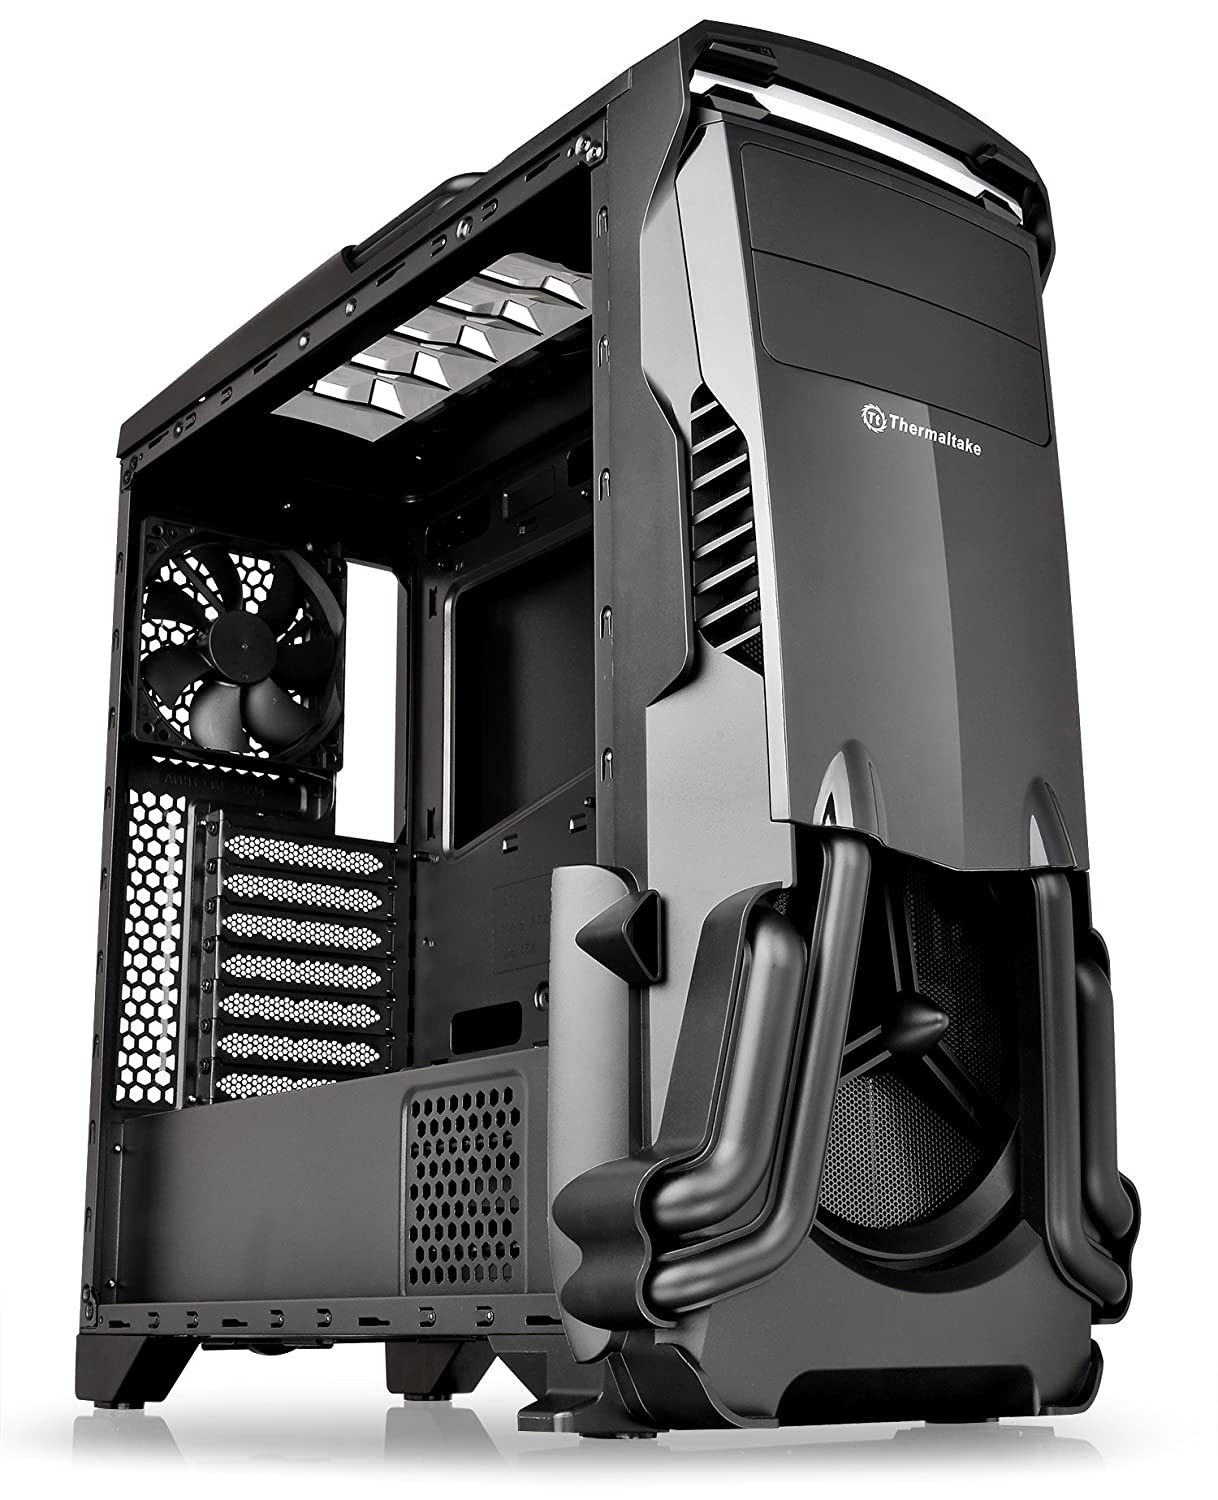 Thermaltake VERSA N24 Black ATX Mid Tower Gaming Computer Case with Power Supply Cover CA-1G1-00M1WN-00